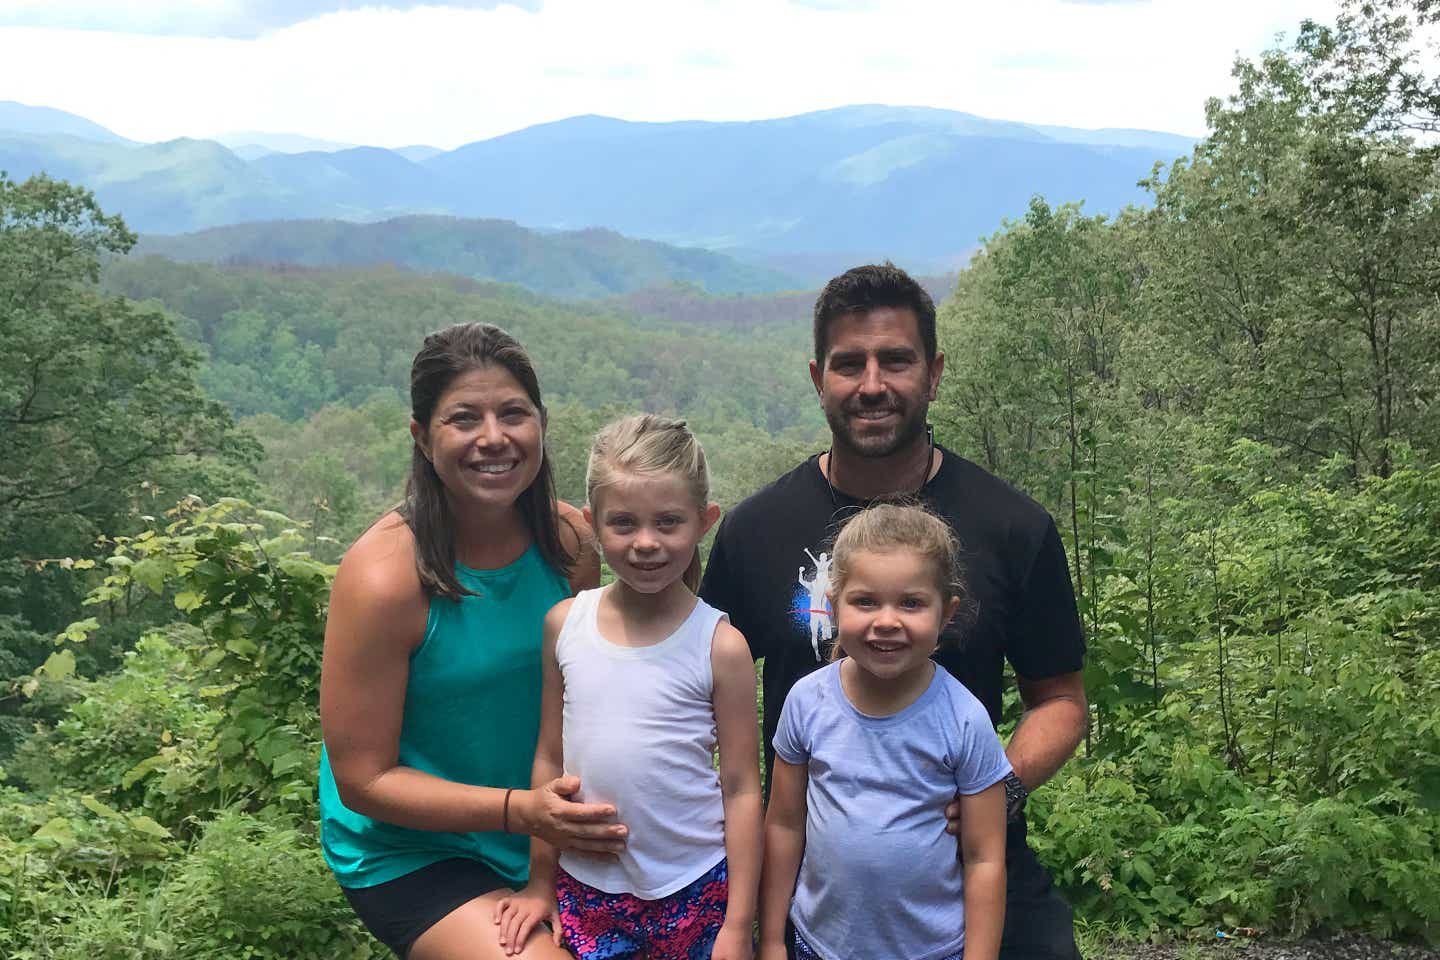 Author, Chris Johnston (far-left), stands in front of a range of trees at the Great Smoky Mountains with her husband, Josh (far-right), and daughters, Kyndall (front-left), and Kyler (front-right).